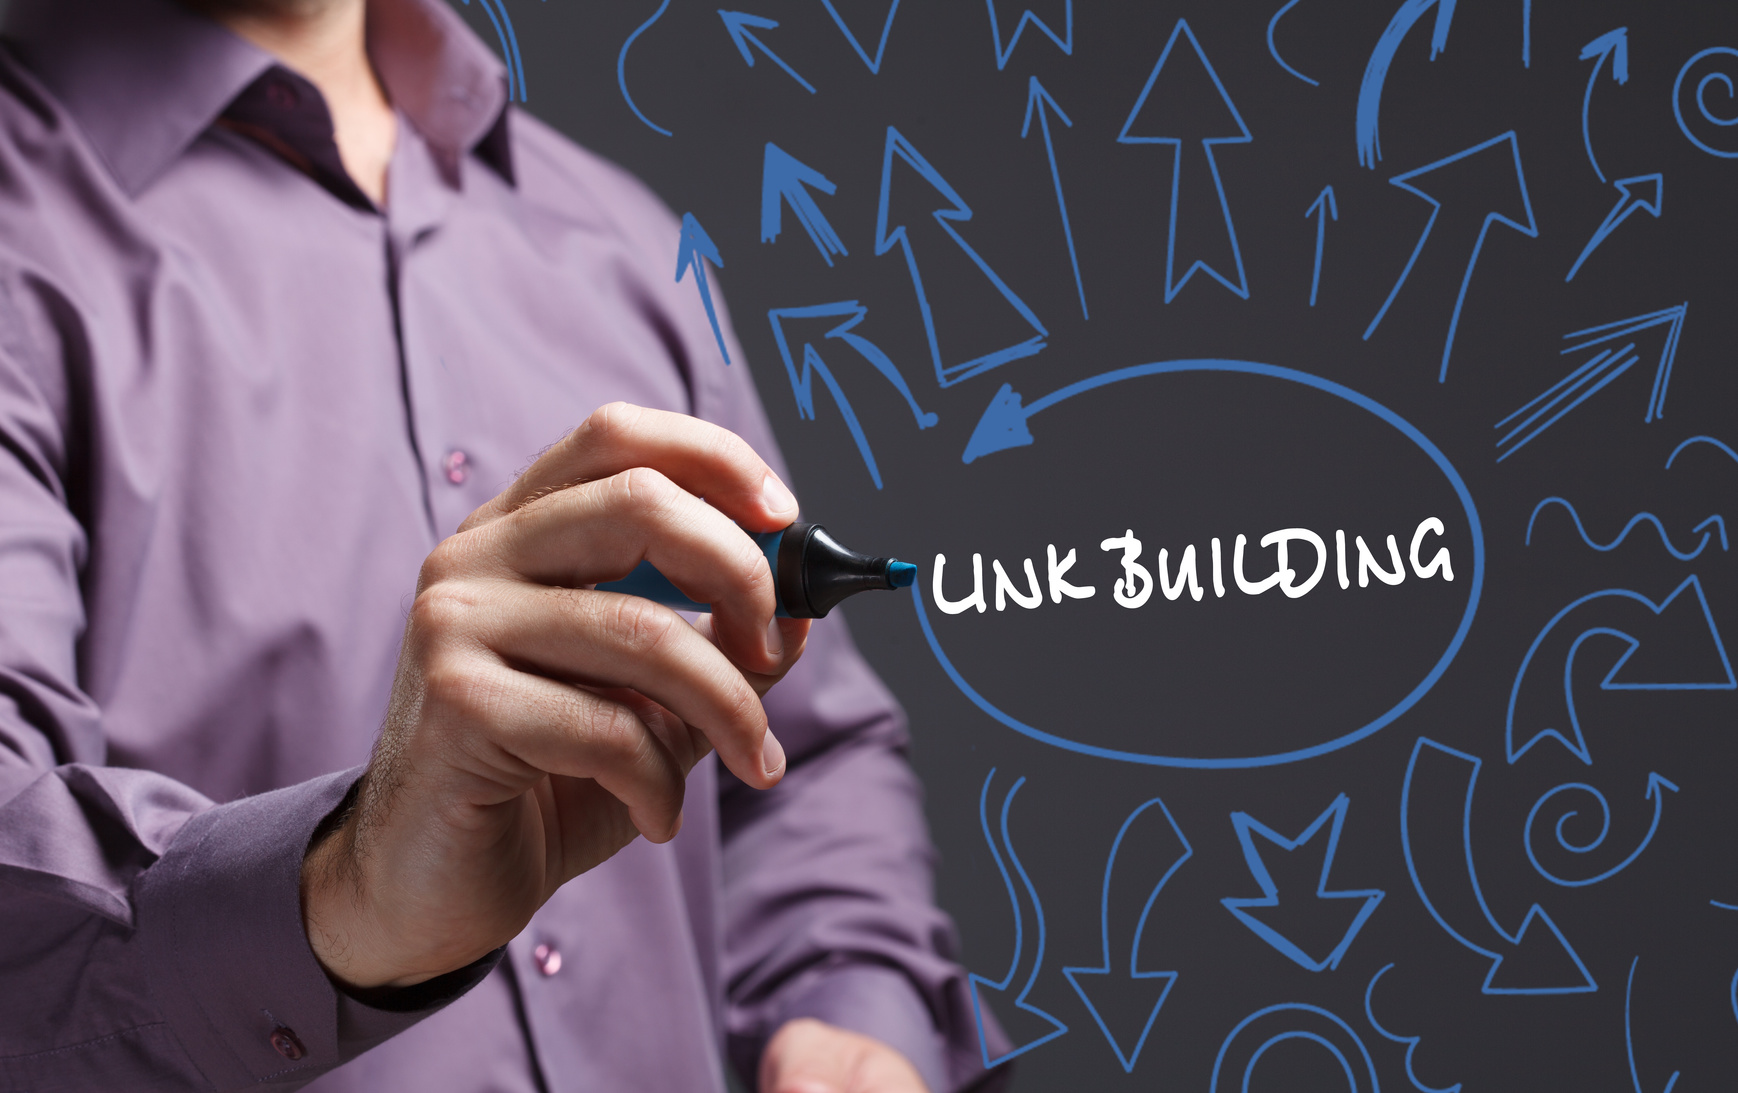 Outbound Link Building